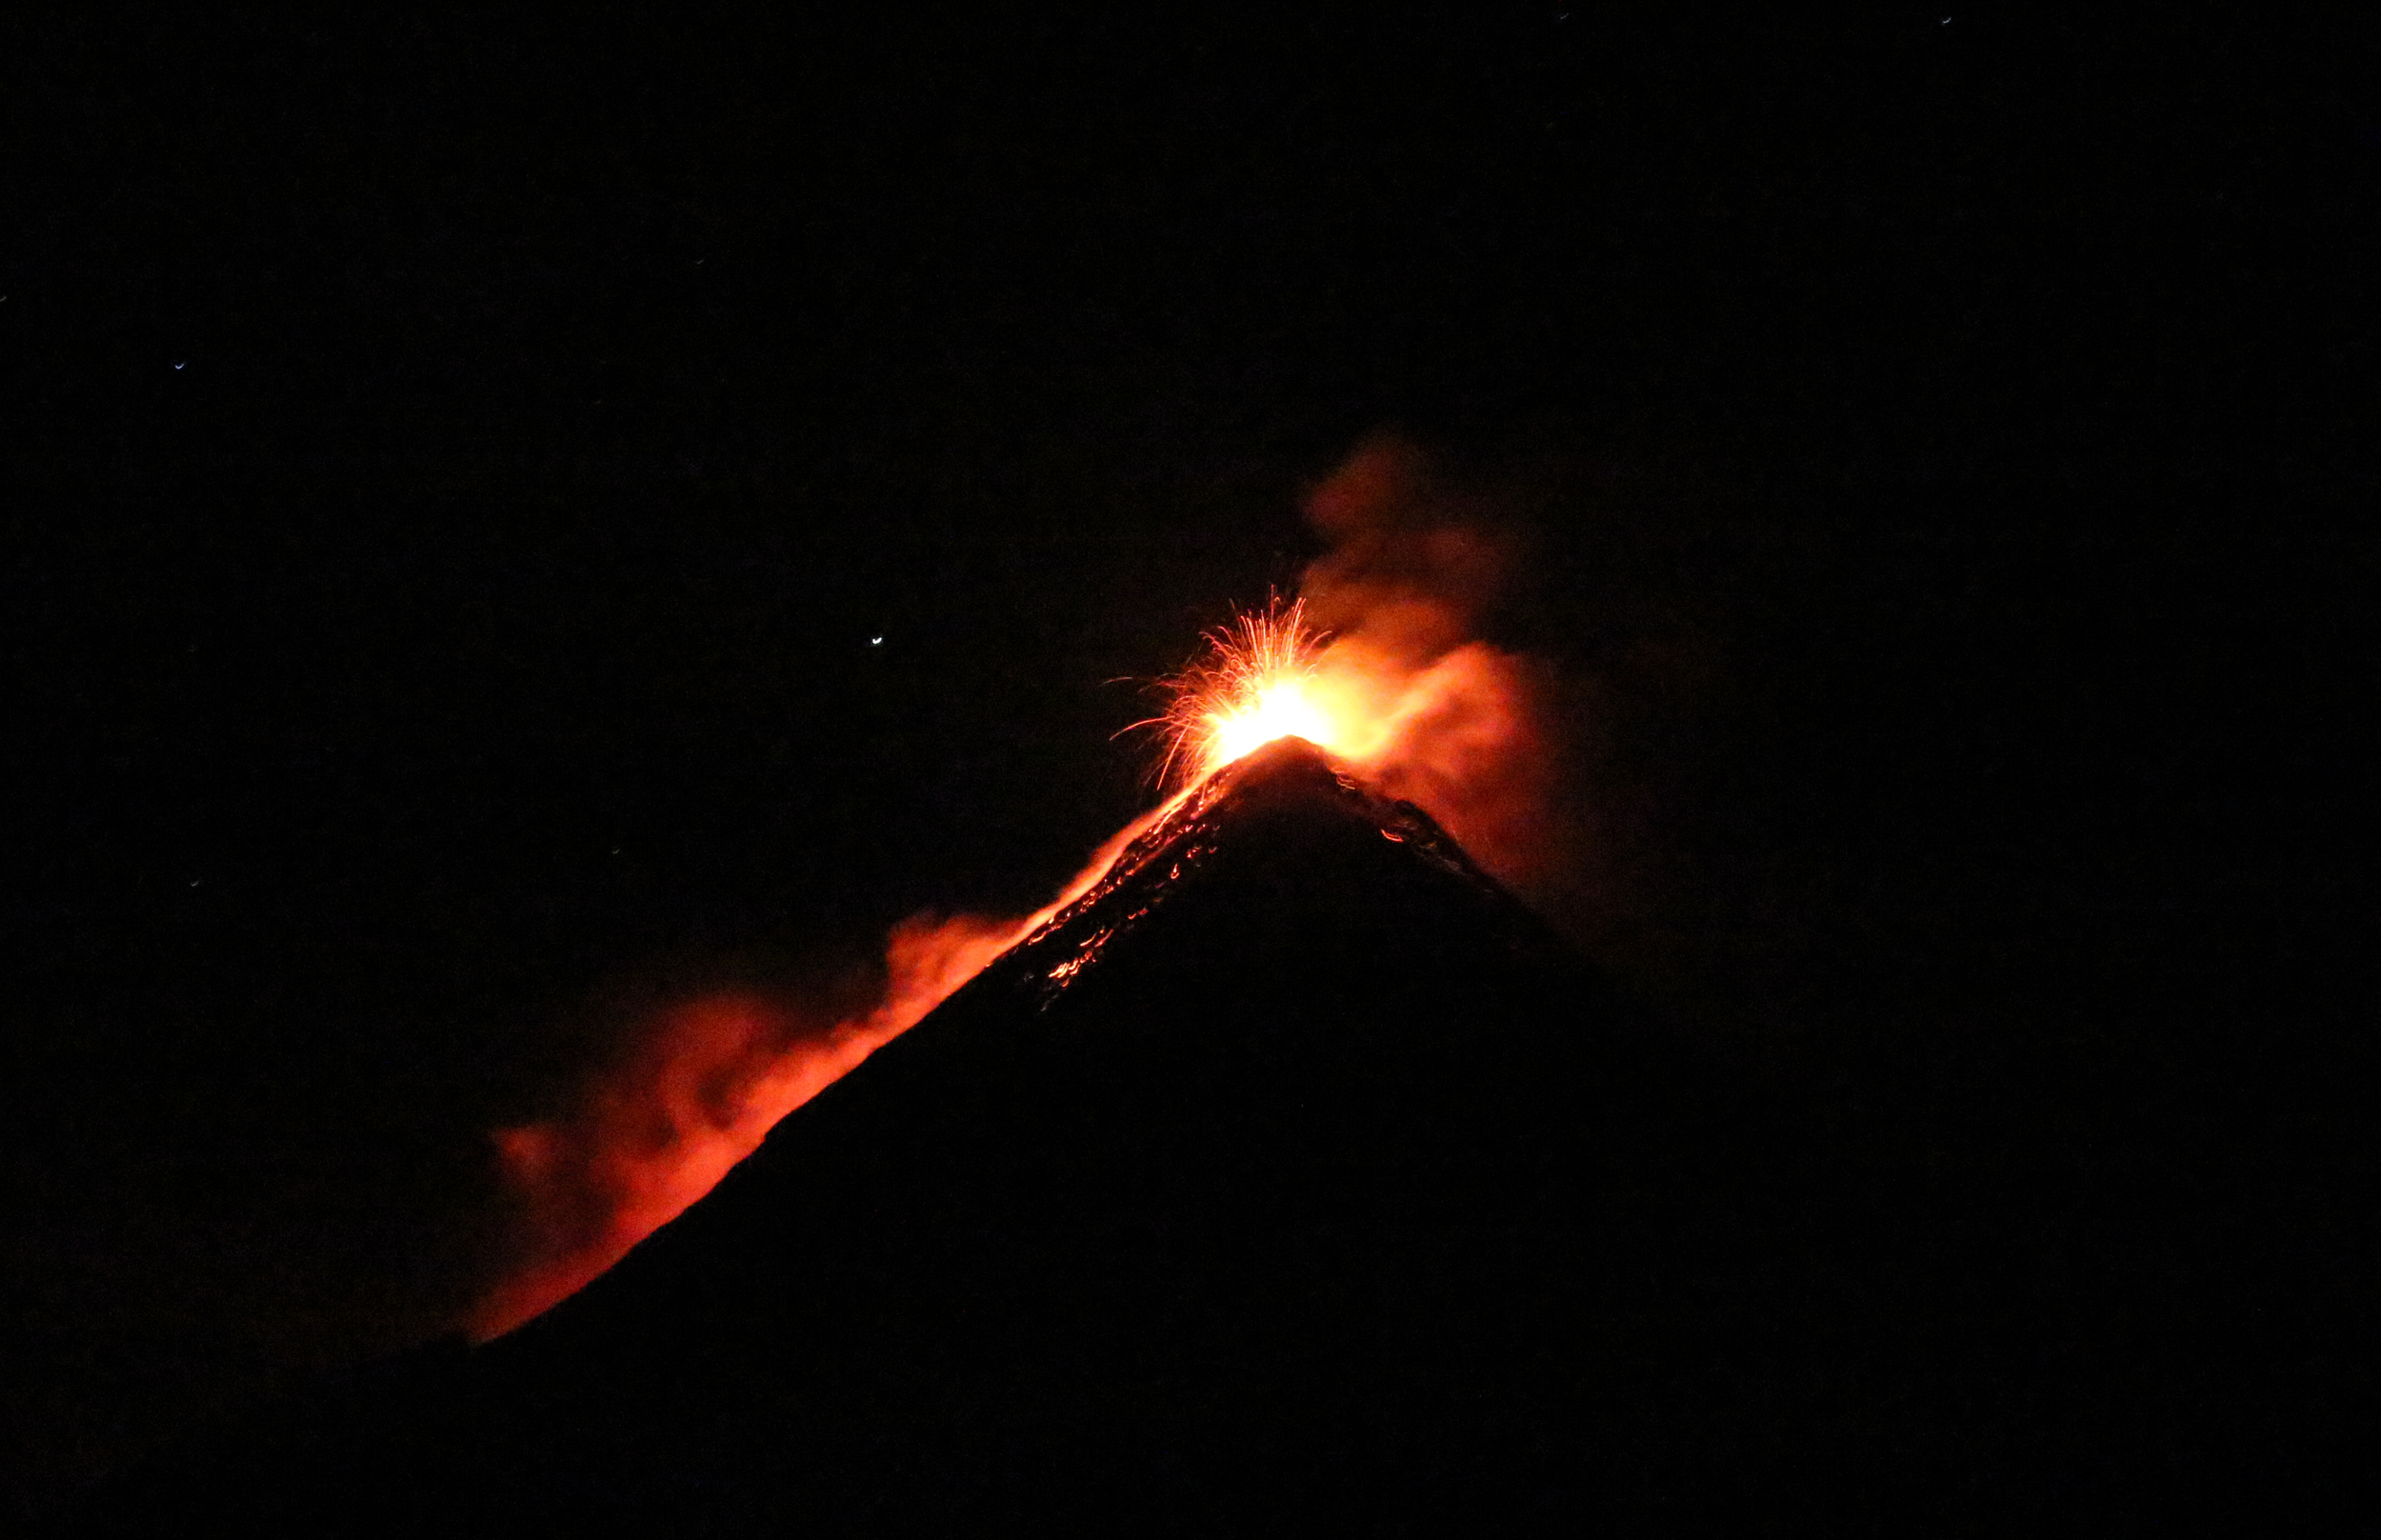 Fuego erupting by night. Astonishing.